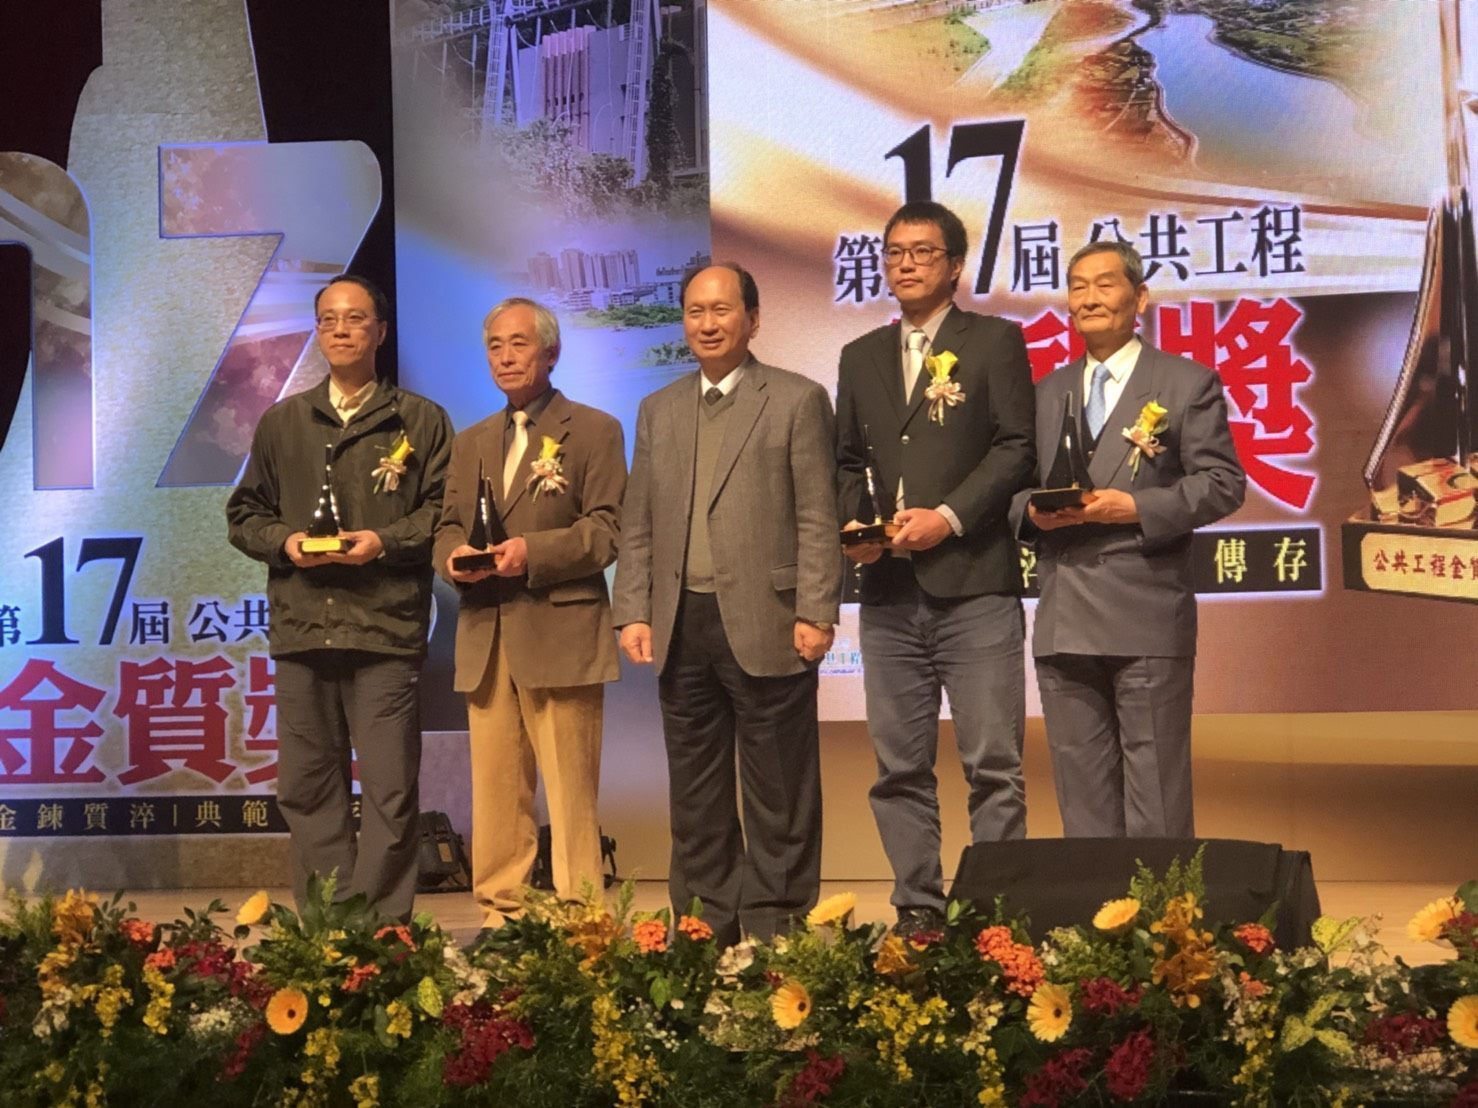 The venues in Taipei 2017 Summer Universiade won the Award of Excellence in the 17th Public Construction Golden Quality Award sponsored by the Executive Yuan. The awards were presented on December 21, 2017